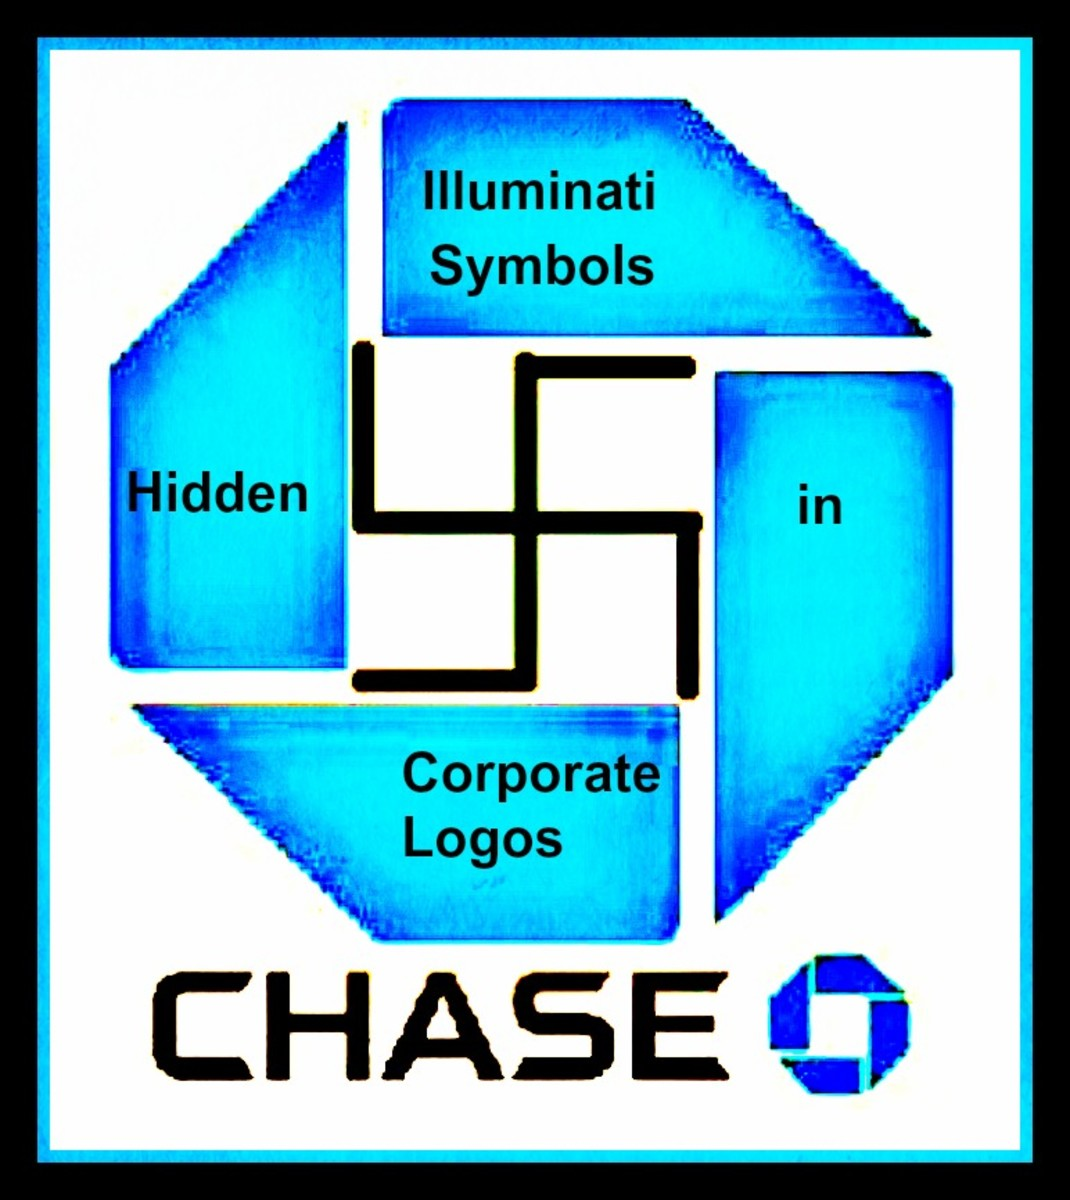 Illuminati Symbols Hidden in Corporate Logos